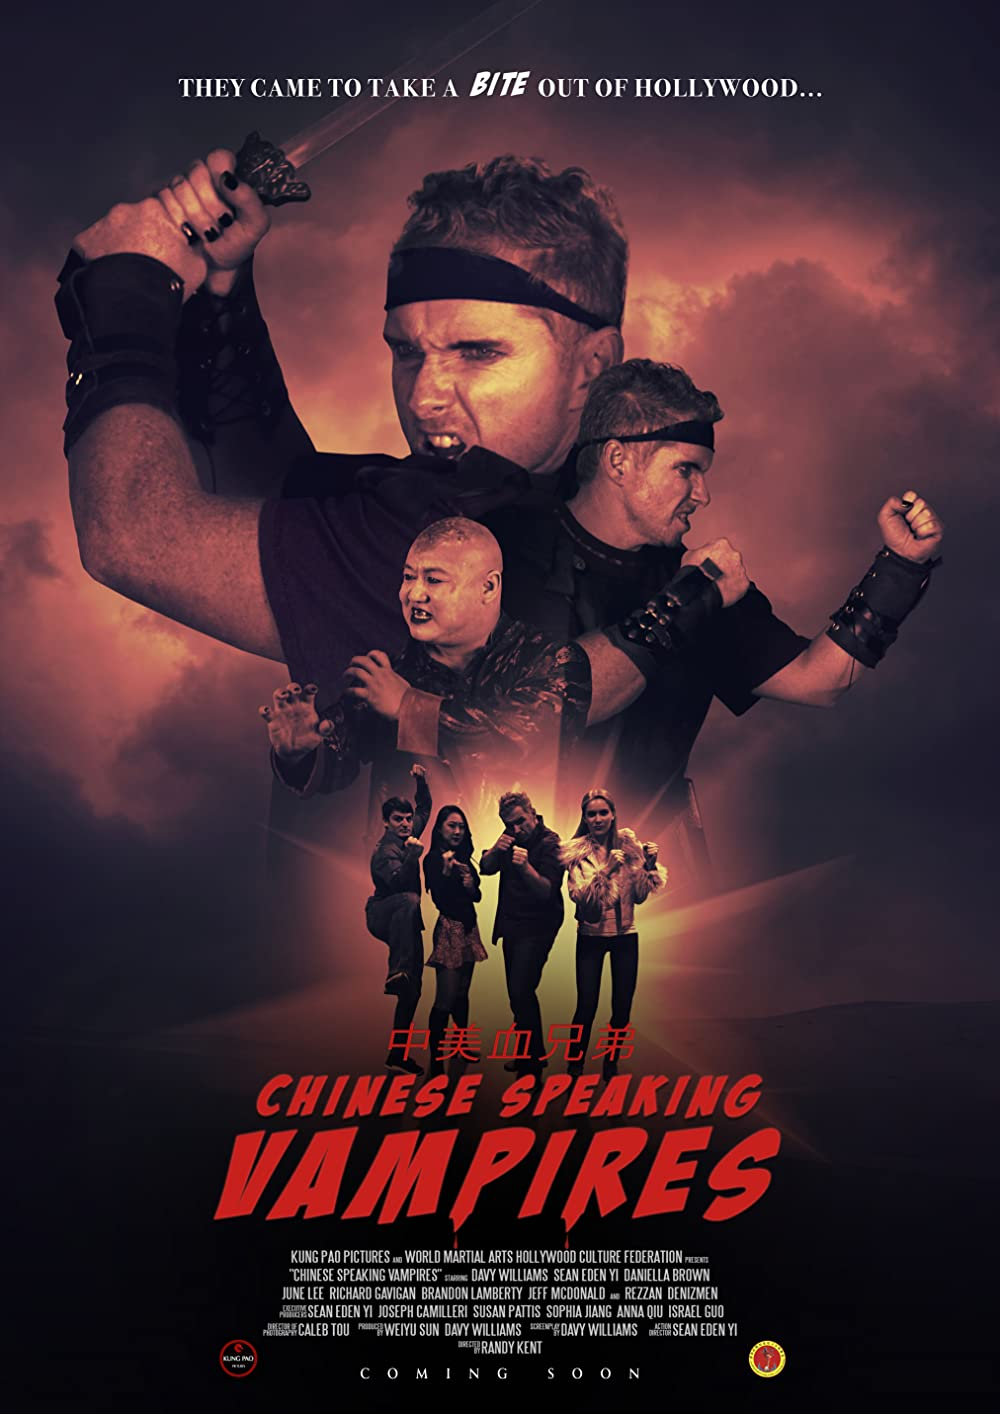 Chinese Speaking Vampires 2021 English Full Movie 720p HDRip 730MB ESub Download